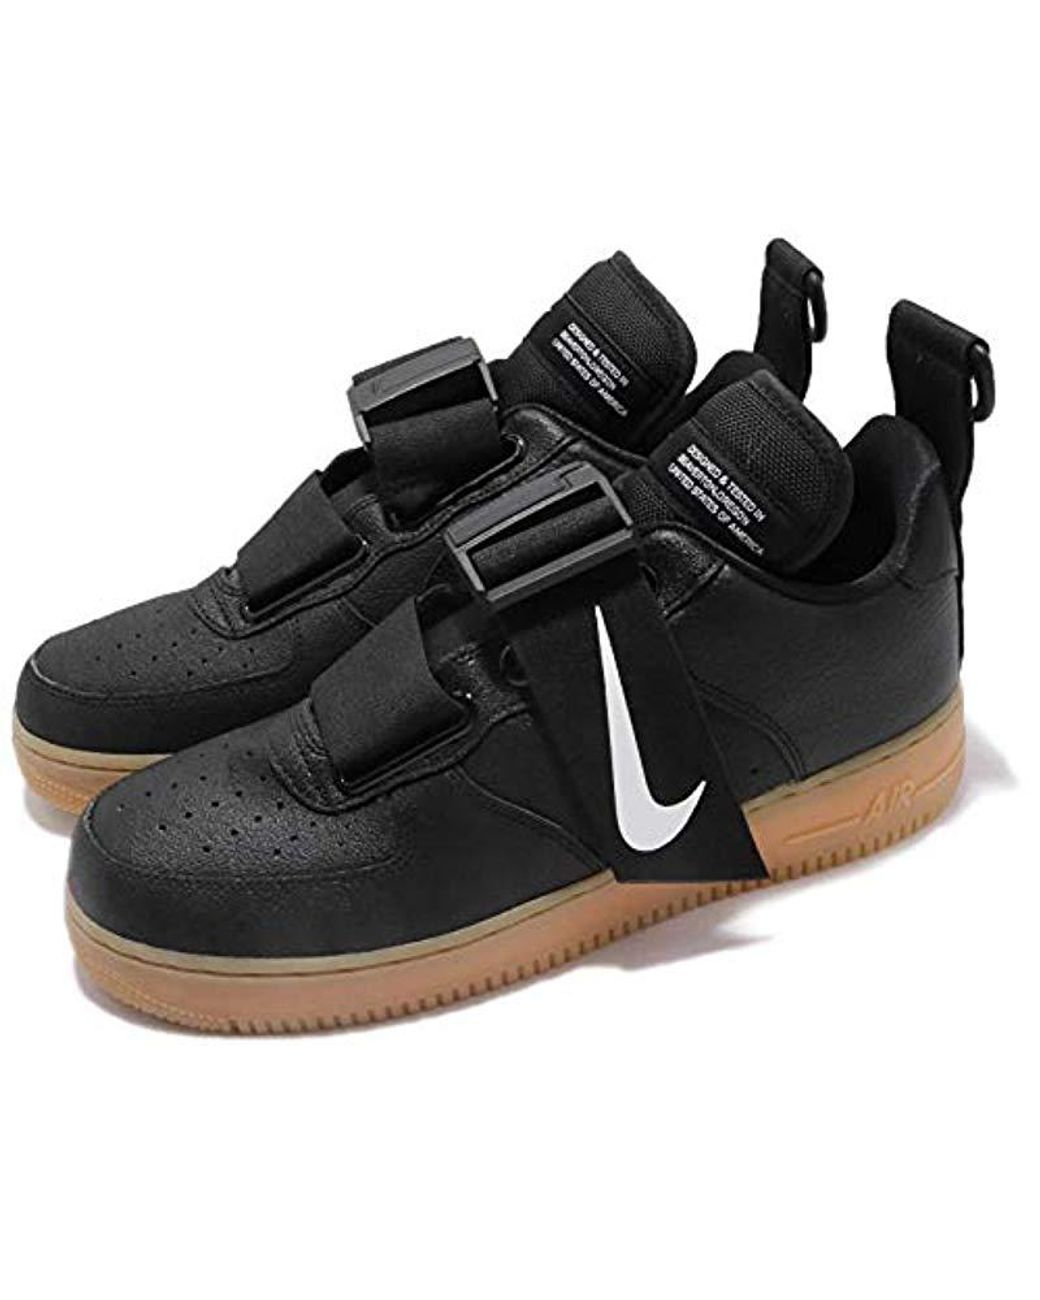 Nike Air Force 1 Utility S Ao1531-002 in Black for Men - Lyst